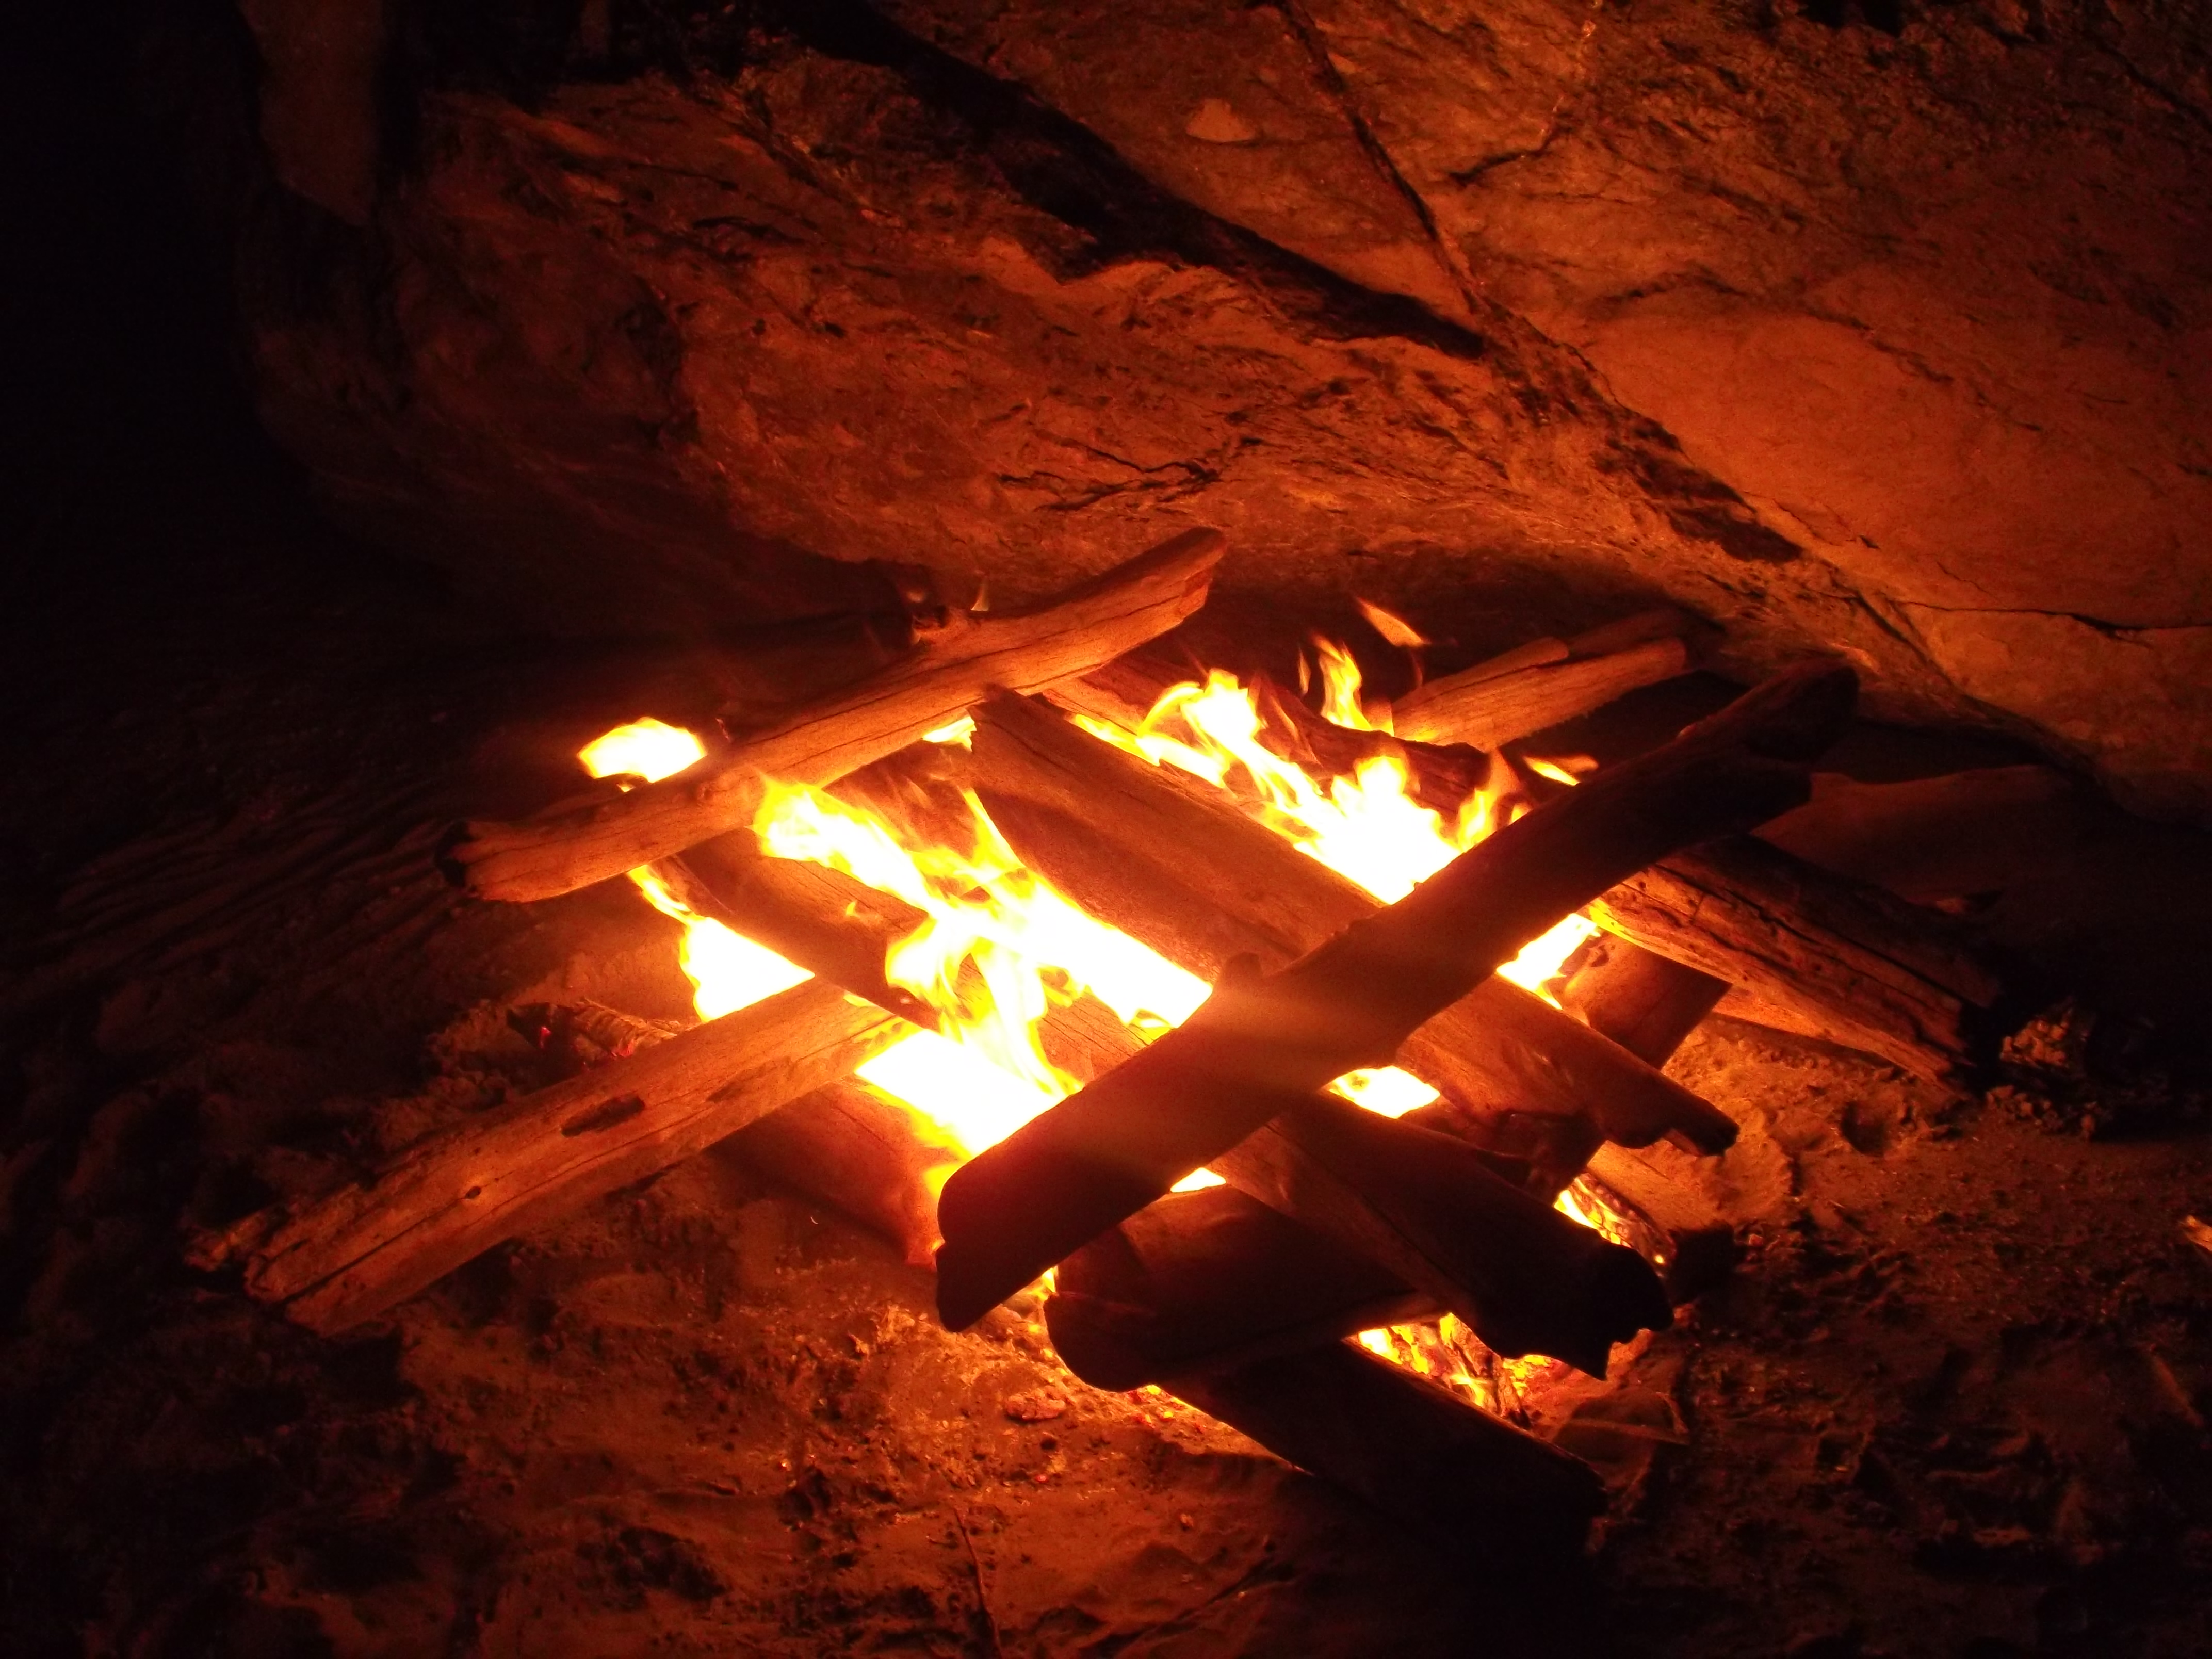 Listen up!! THIS is how you make a campfire on the beach. (photo by D. Speredelozzi)